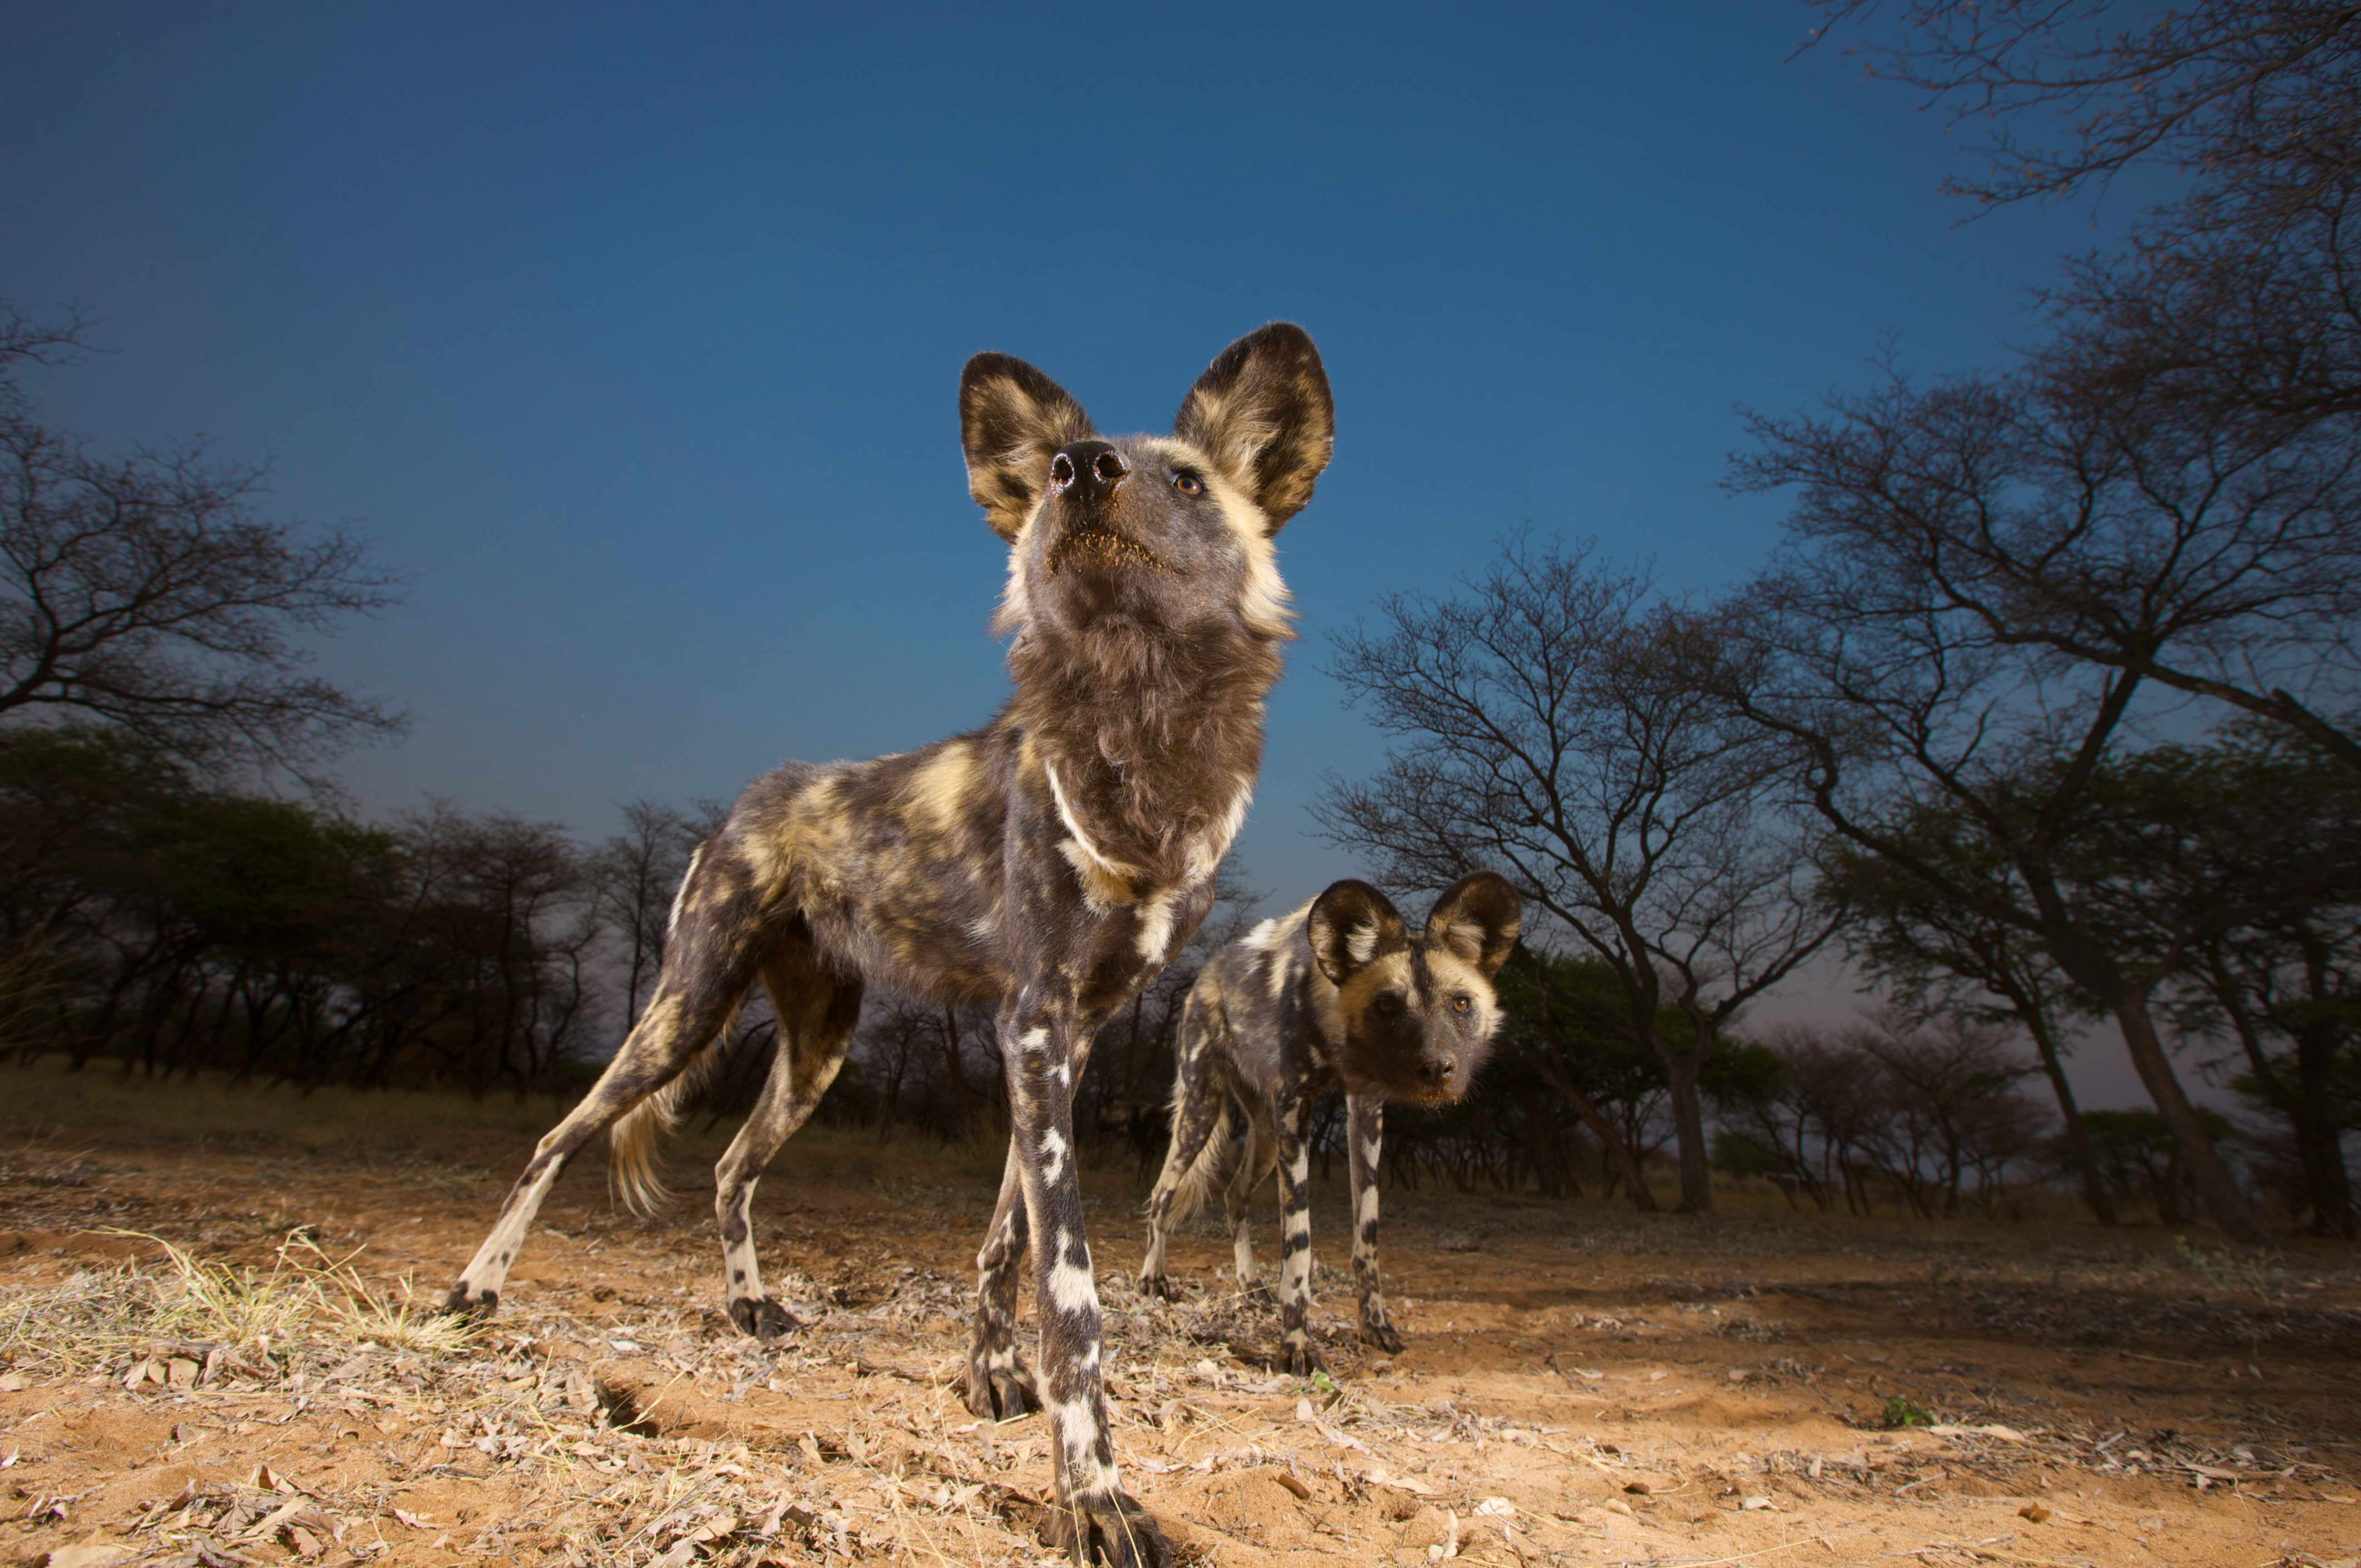 The African wild dog is listed as Endangered on the IUCN Red List. © Gallo Images/Heinrich van den Berg/Getty